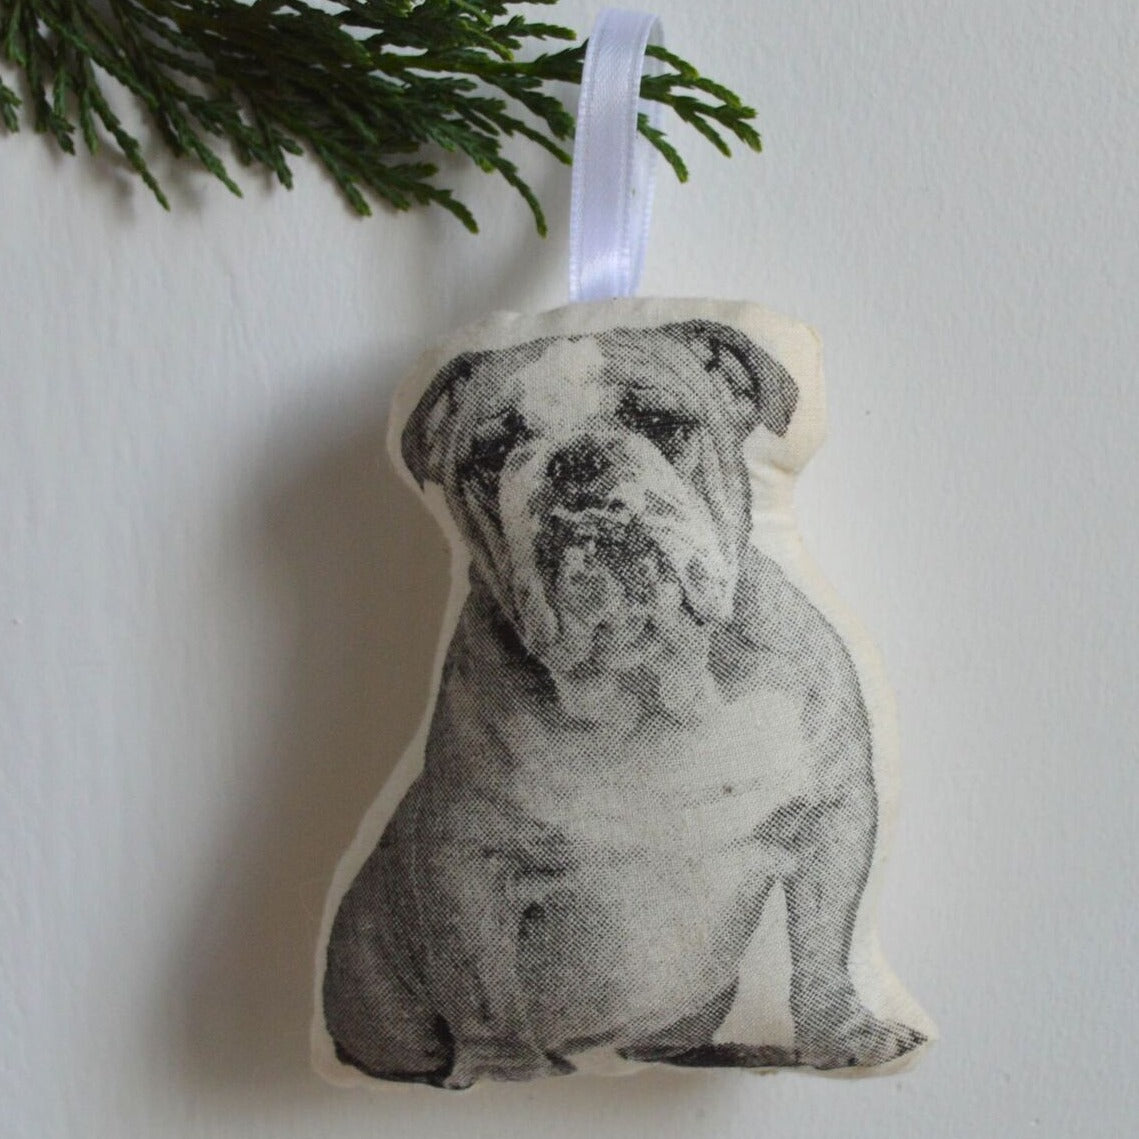 Stuffed Bulldog Ornament, Broderpress, Handcrafted Home Goods and Gifts